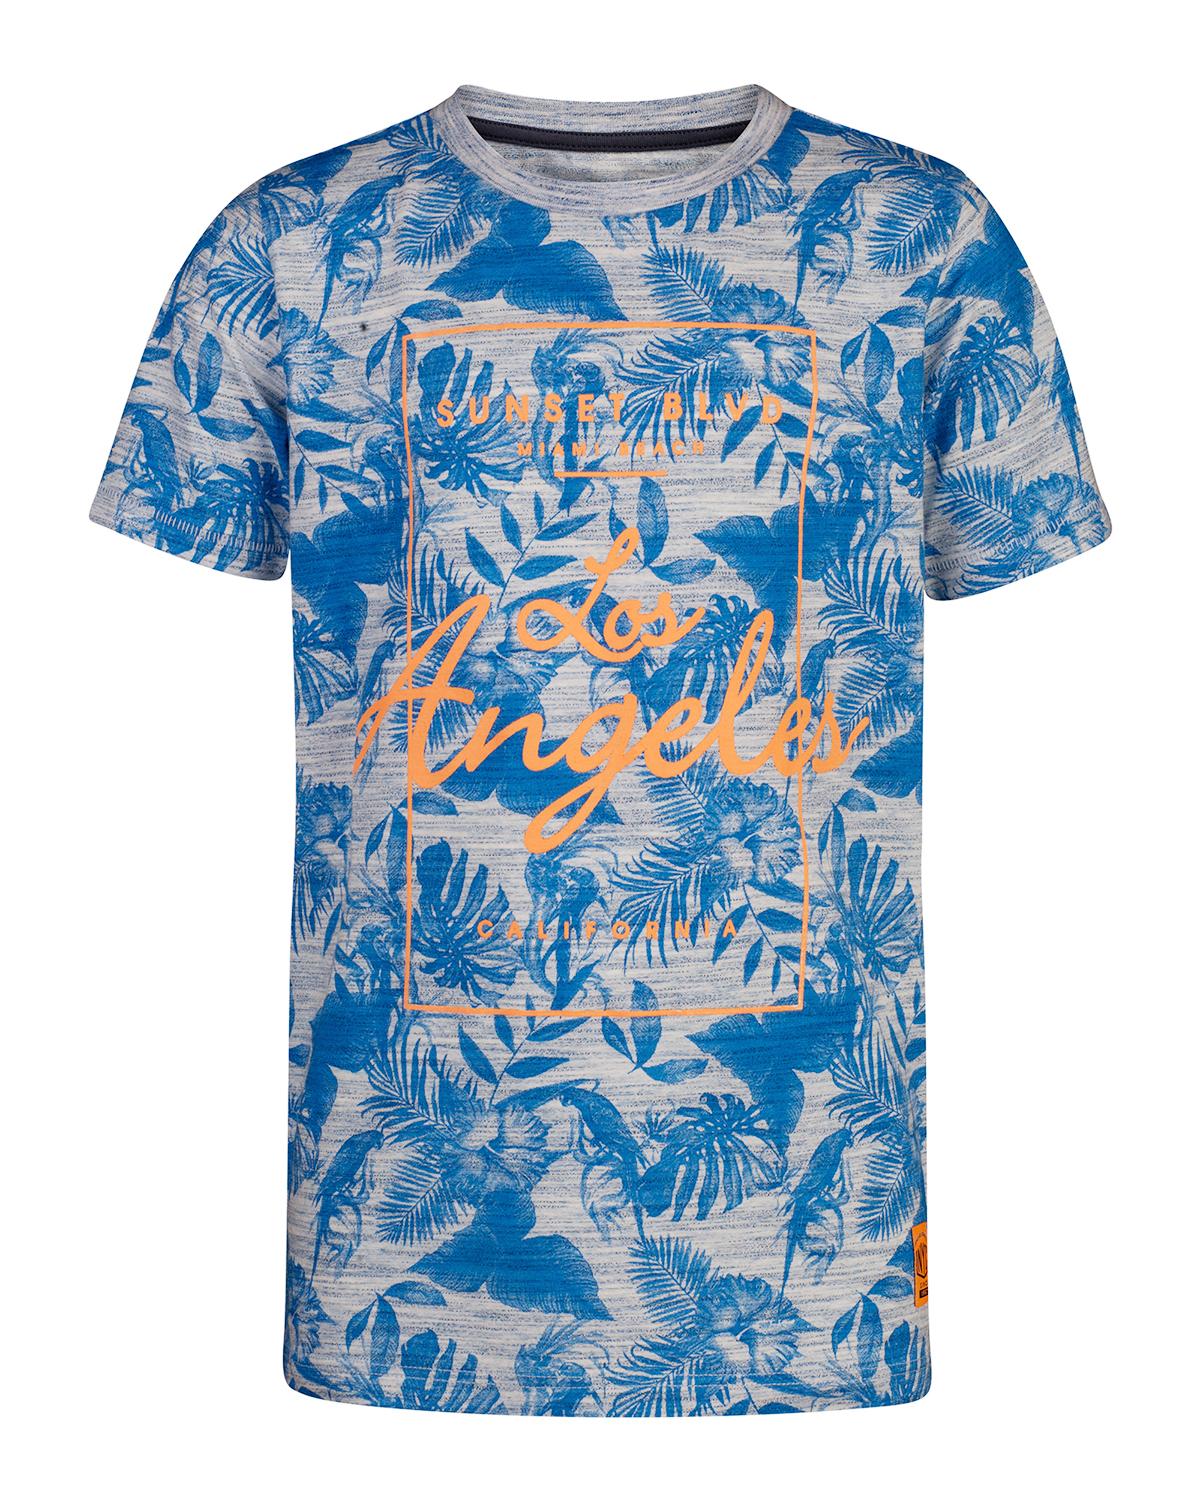 Jongens jungle print t-shirt